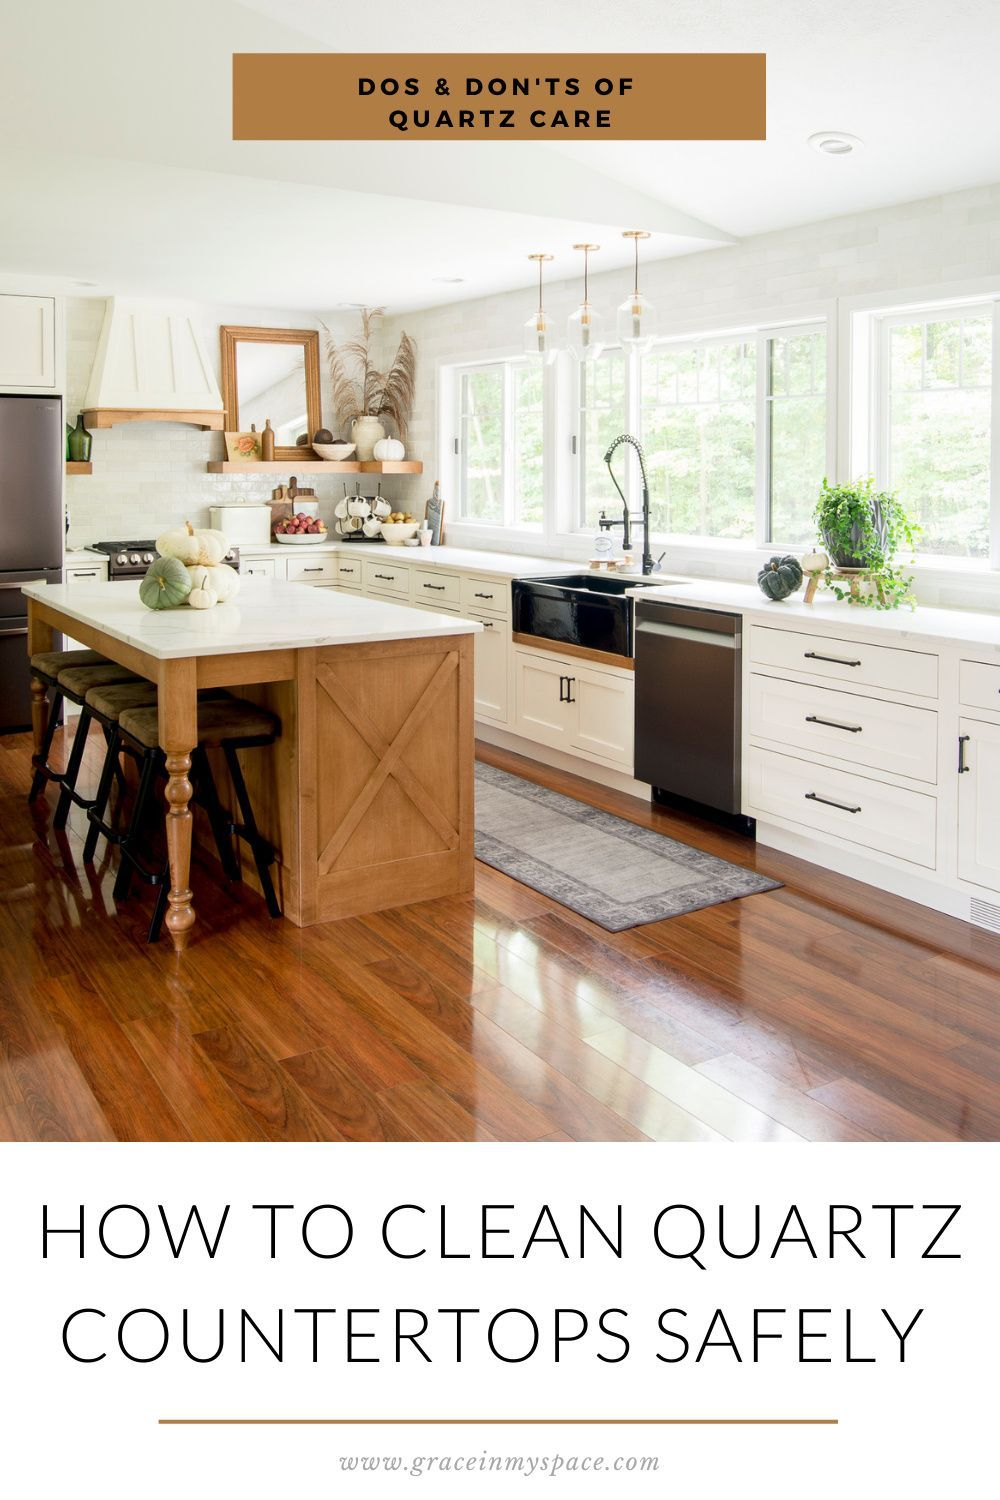 How To Clean Quartz Countertops Safely Clean Quartz Countertops How To Clean Quartz Countertops